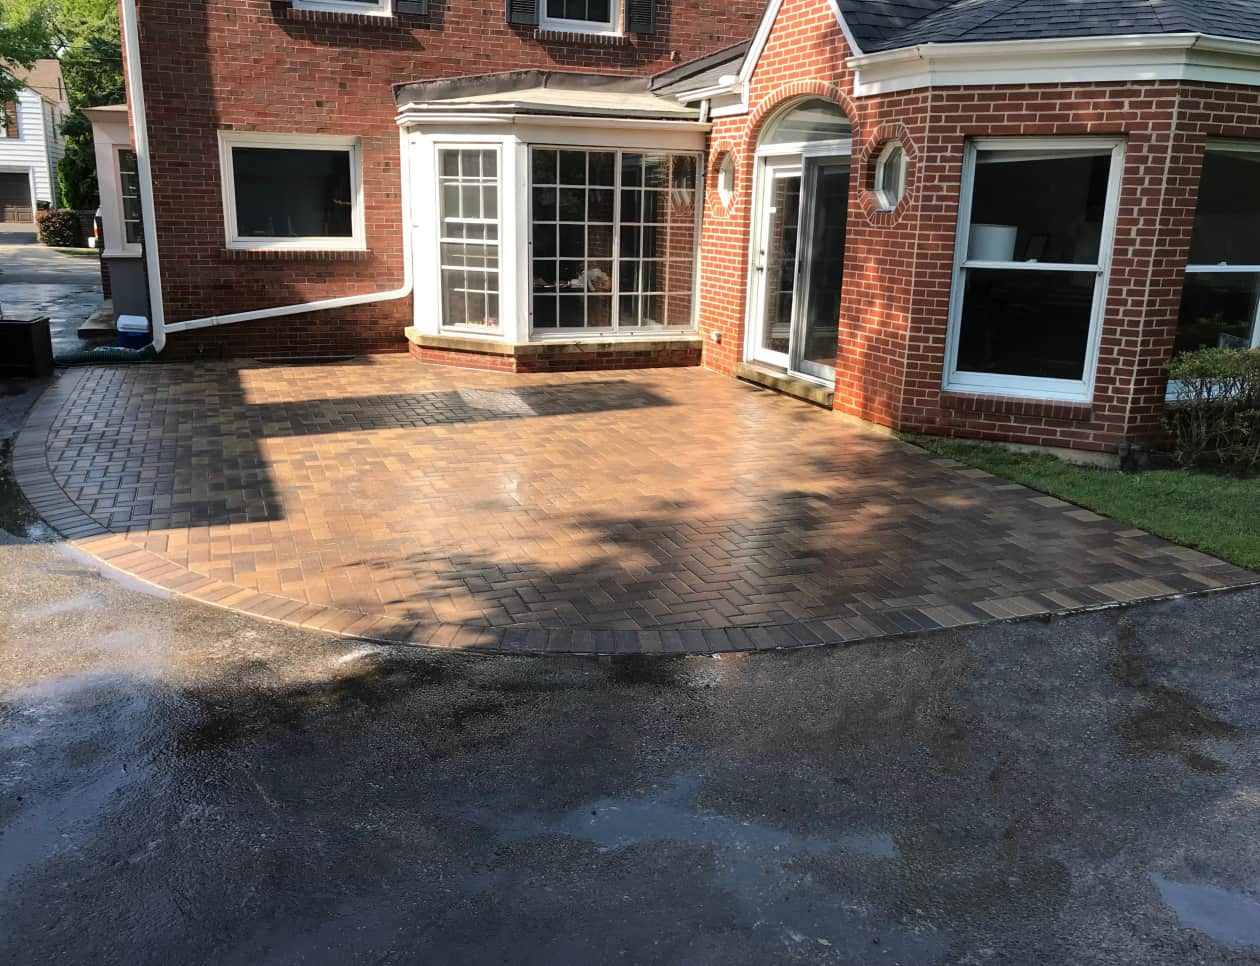 brick patio near house